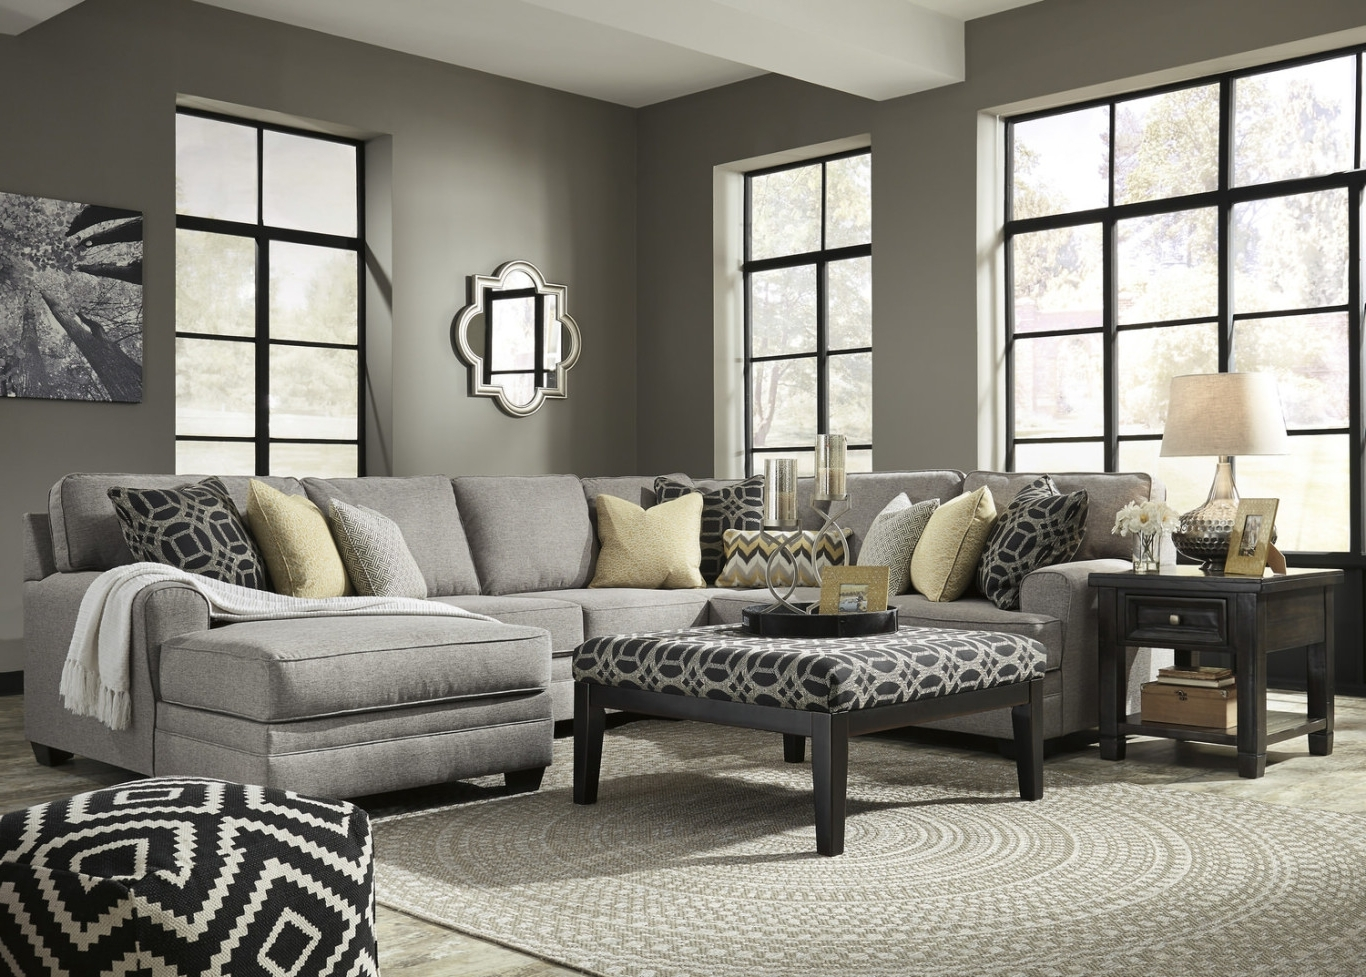 Popular Hom Furniture St Cloud Mn Intended For St Cloud Mn Sectional Sofas (View 7 of 15)